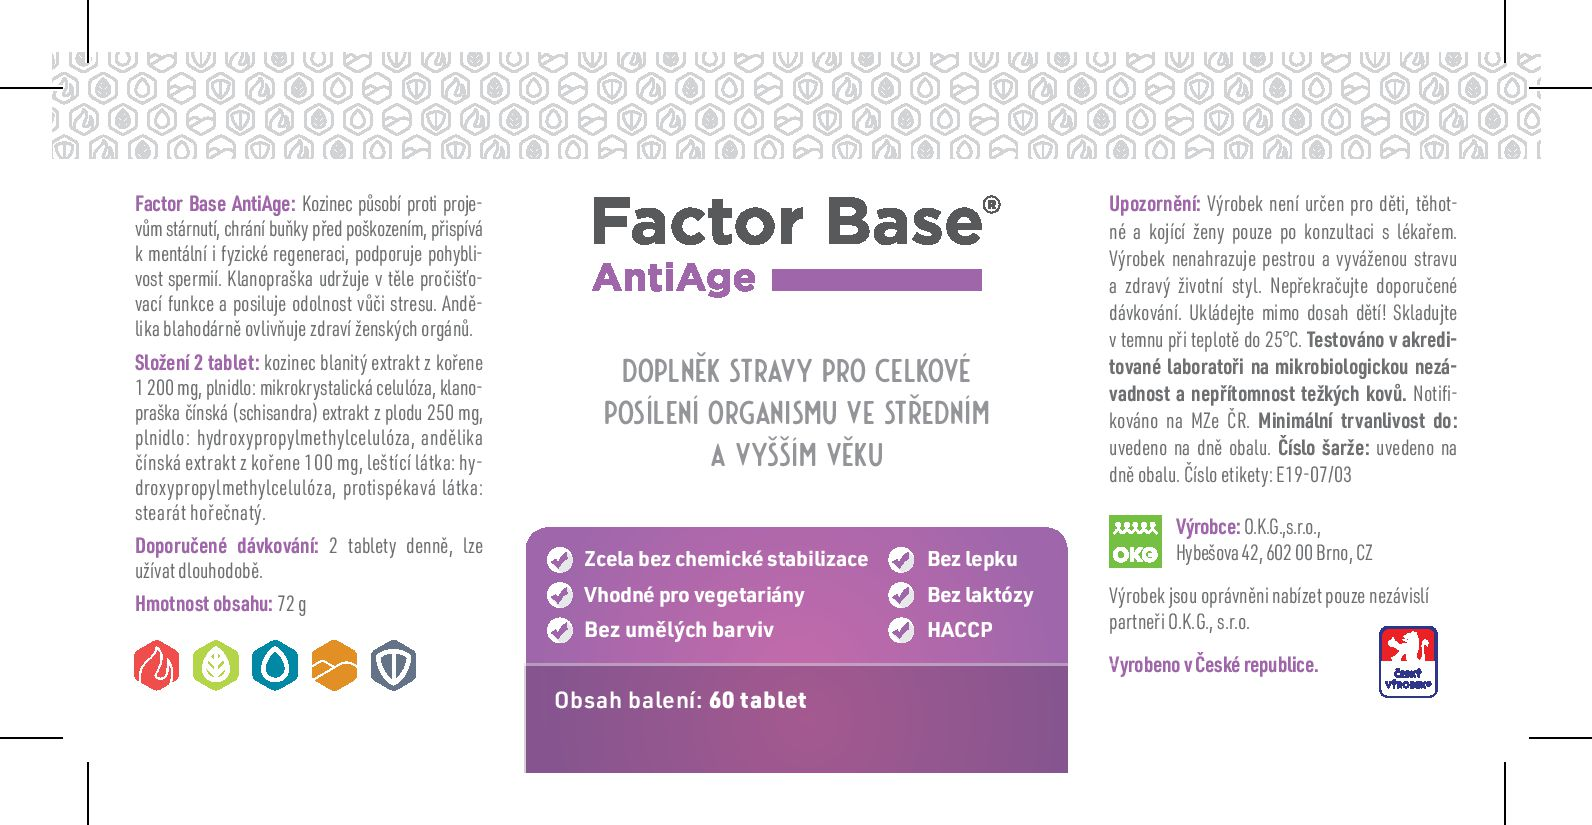 factor Base Antiage